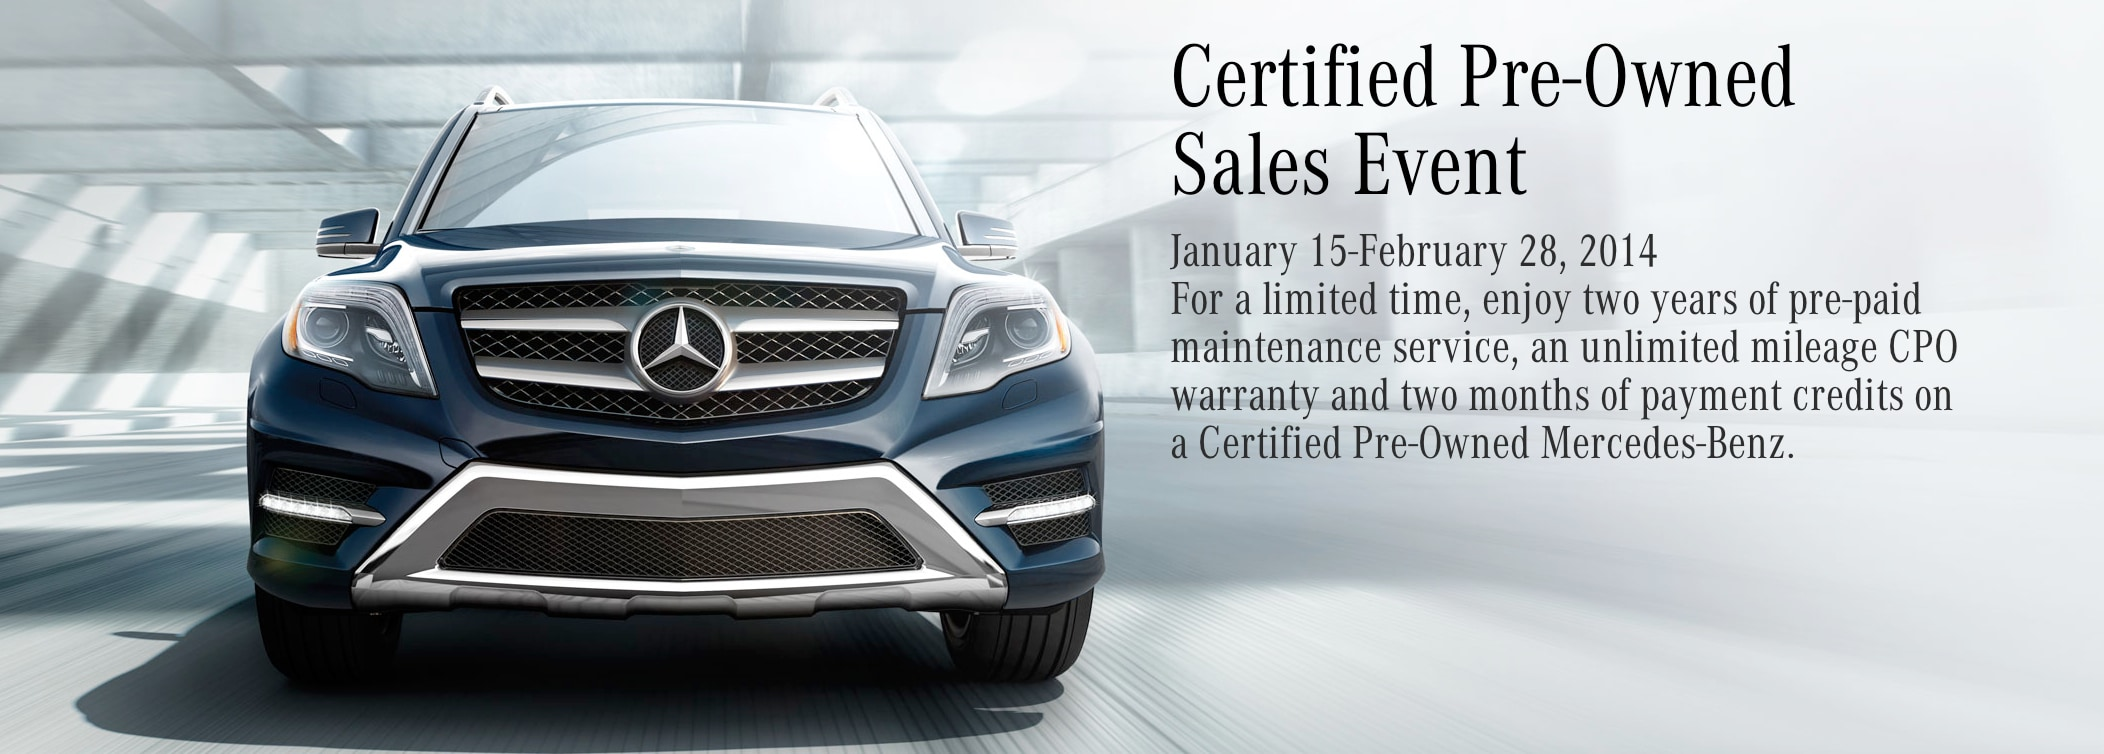 Mercedes benz of arlington new mercedes benz dealership for Mercedes benz certified pre owned sales event